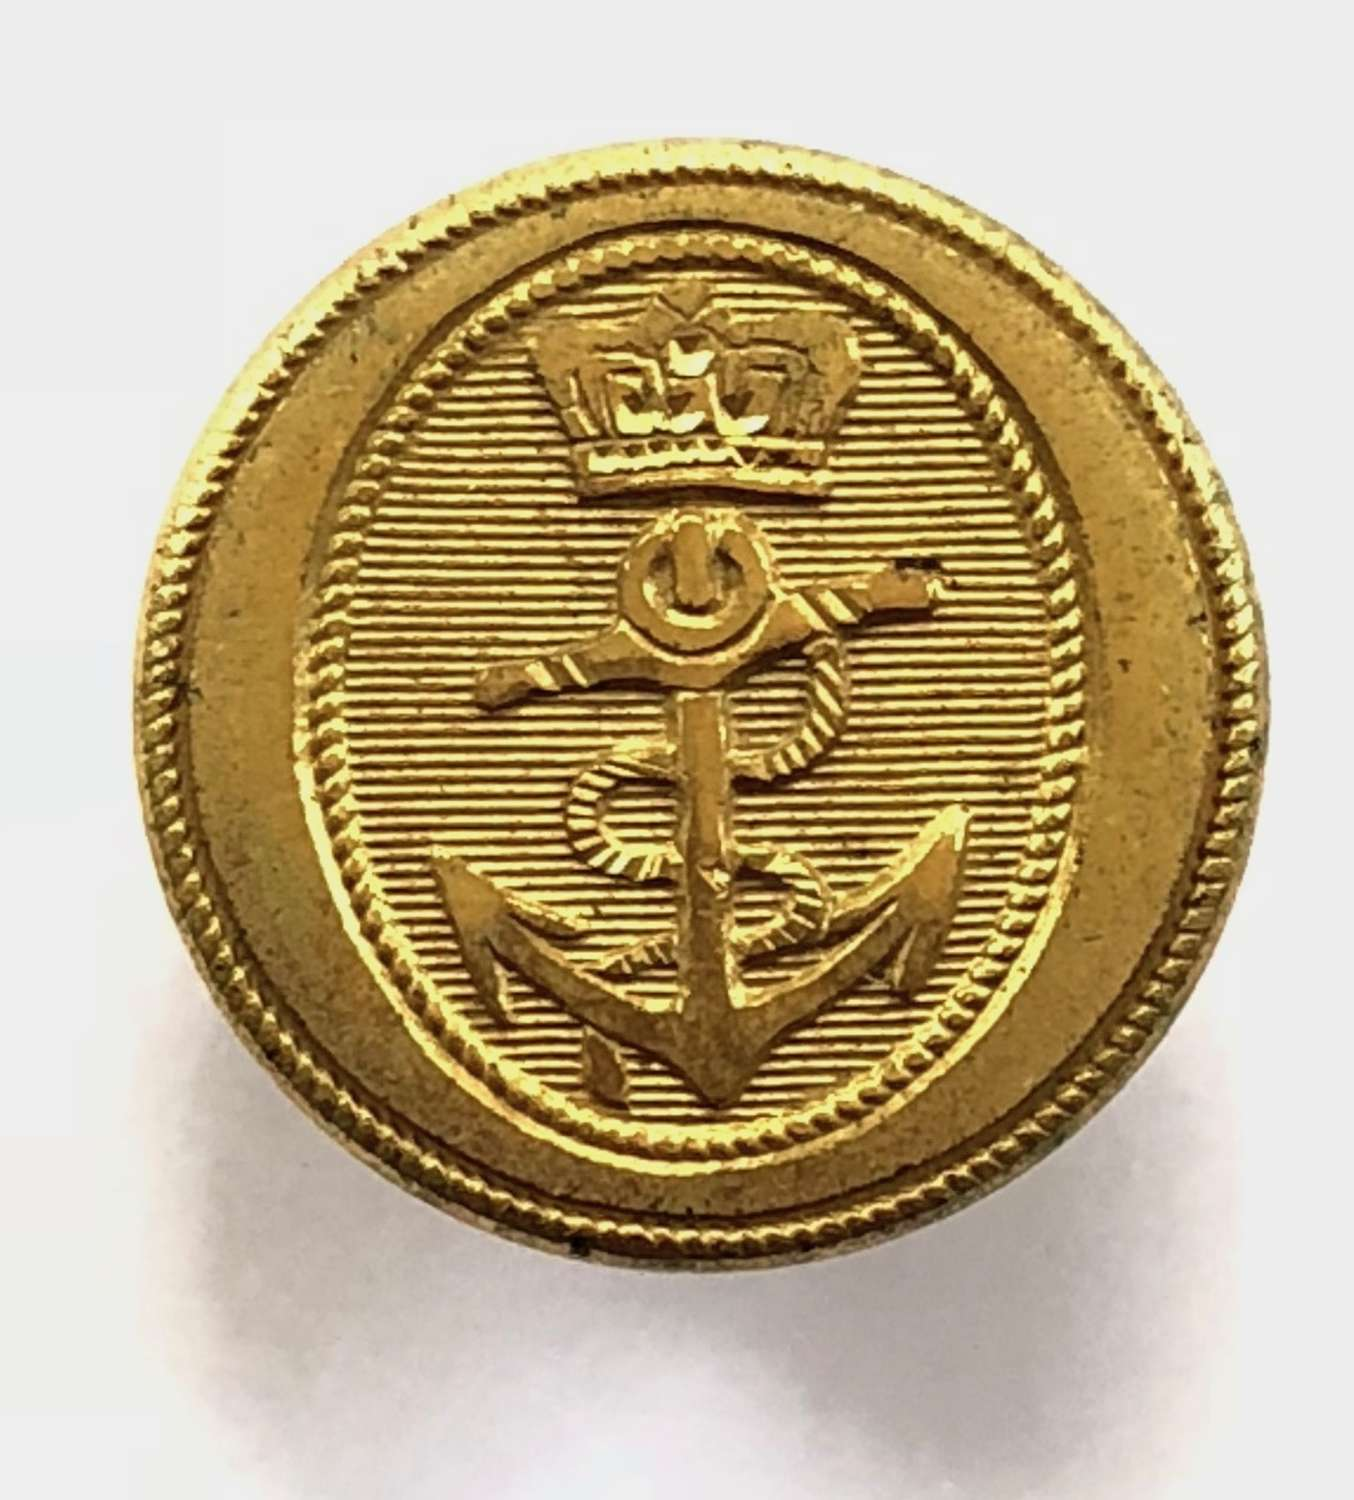 Royal Navy Captain's or Commander's fine gilt button C1795-1812.